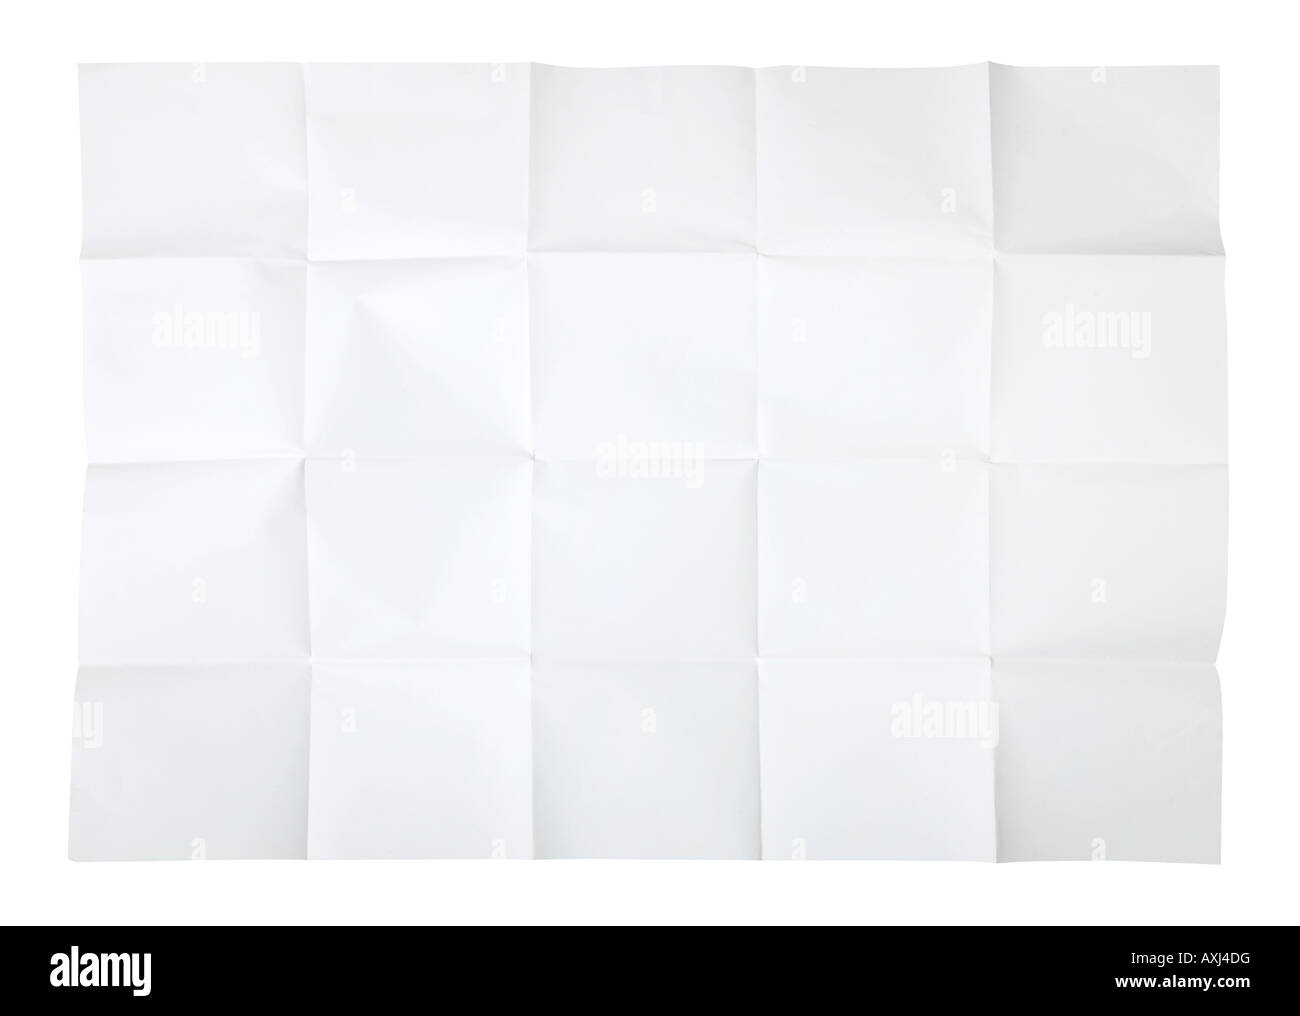 Blank unfolded map isolated on white background insert your own design - Stock Image